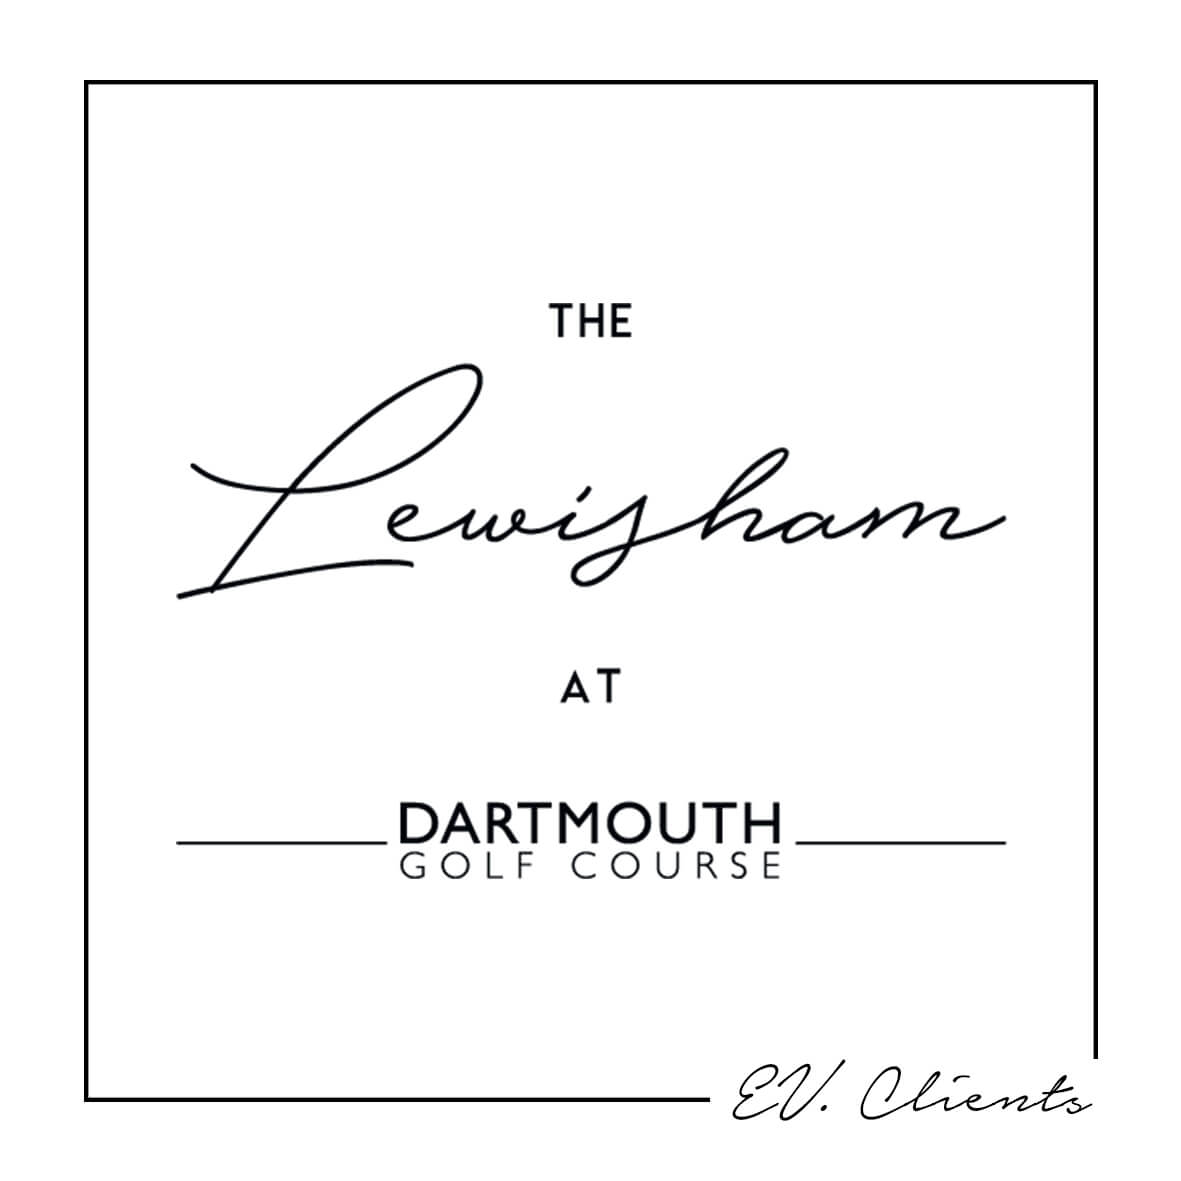 The Lewisham at Dartmouth Golf Club